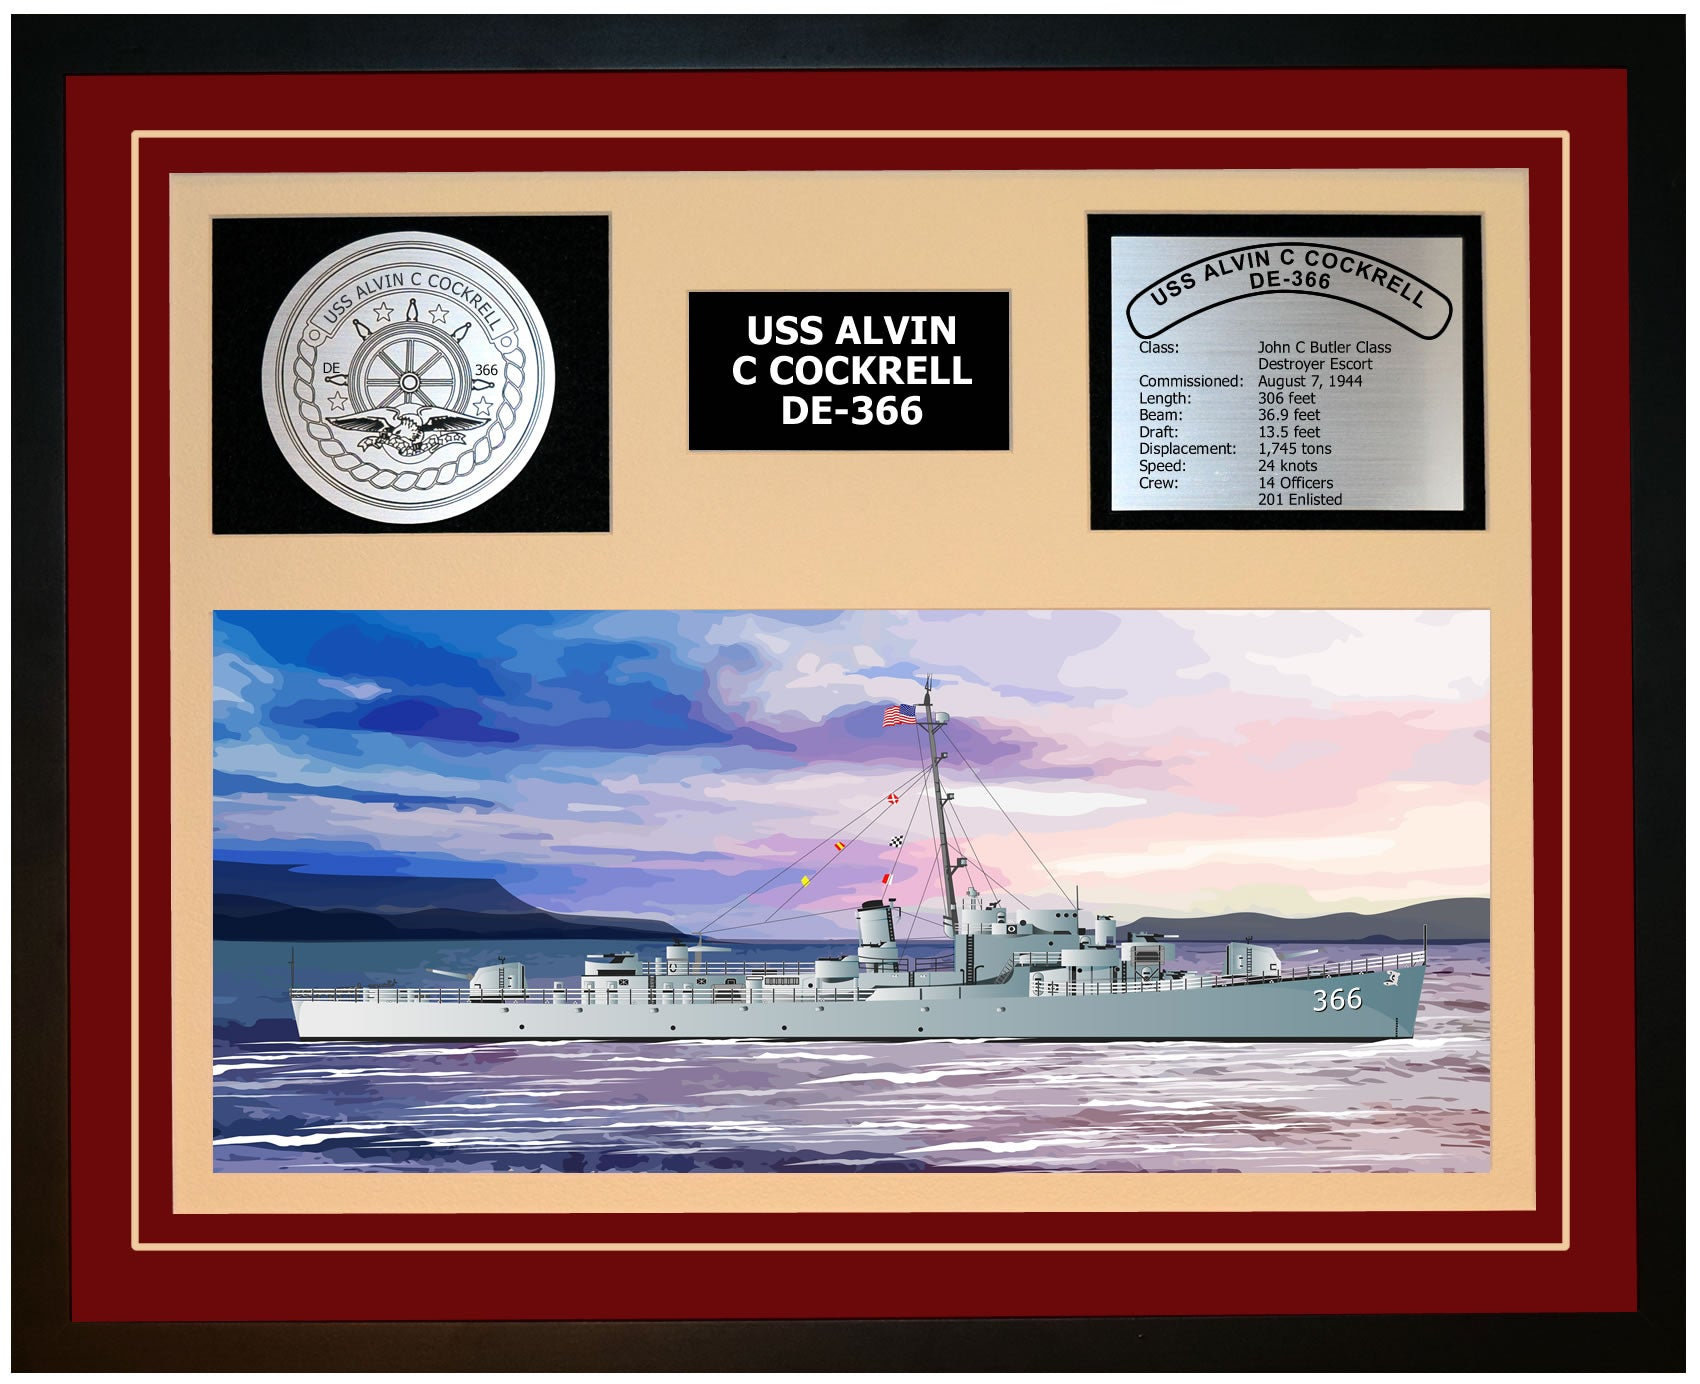 USS ALVIN C COCKRELL DE-366 Framed Navy Ship Display Burgundy